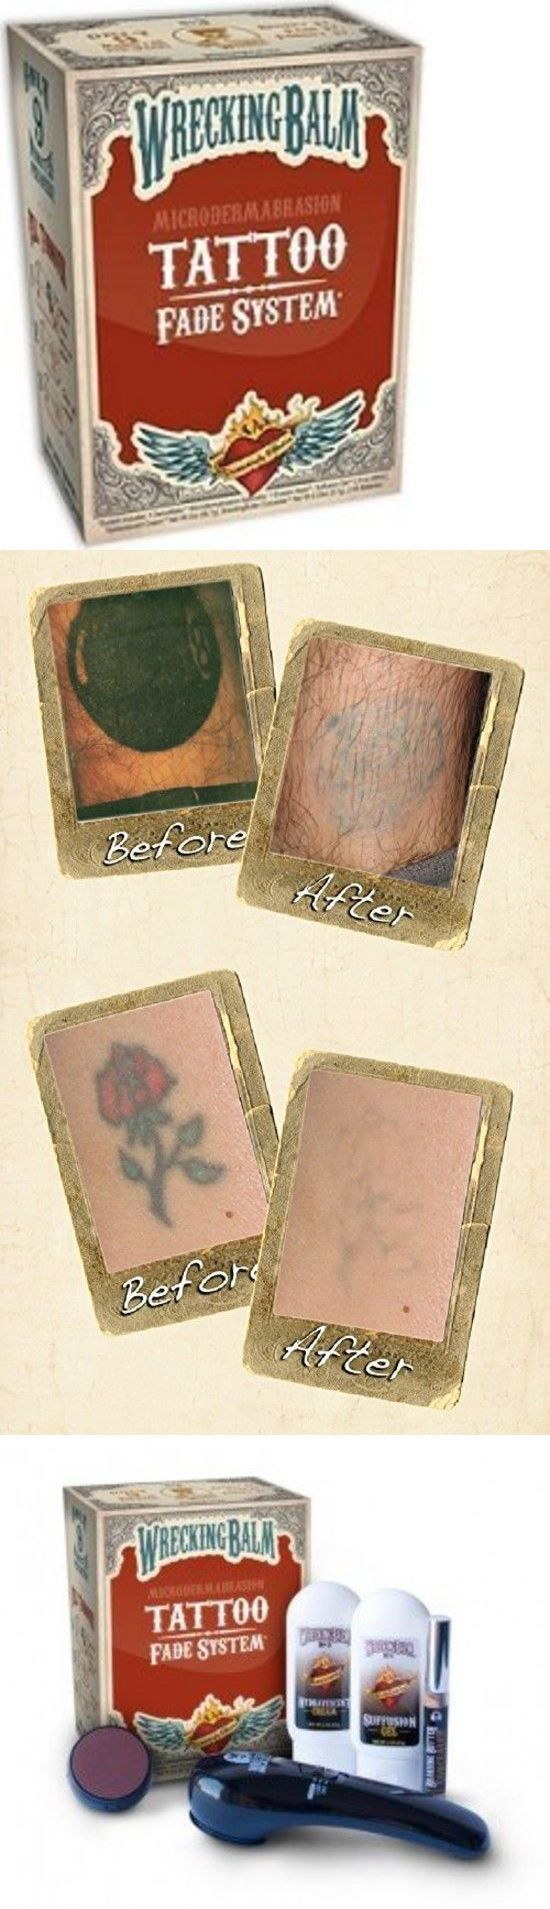 Tattoo Removal - Tattoo Removal Machines: Remove Tattoos Cream Wrecking Balm Microdermabrasion Help Tattoo Fade System New -> BUY IT NOW ONLY: $37.7 on eBay! - Quick and Easy Natural Methods & Secrets to Eliminating the Unwanted Tattoo That You've Been Regretting for a Long Time